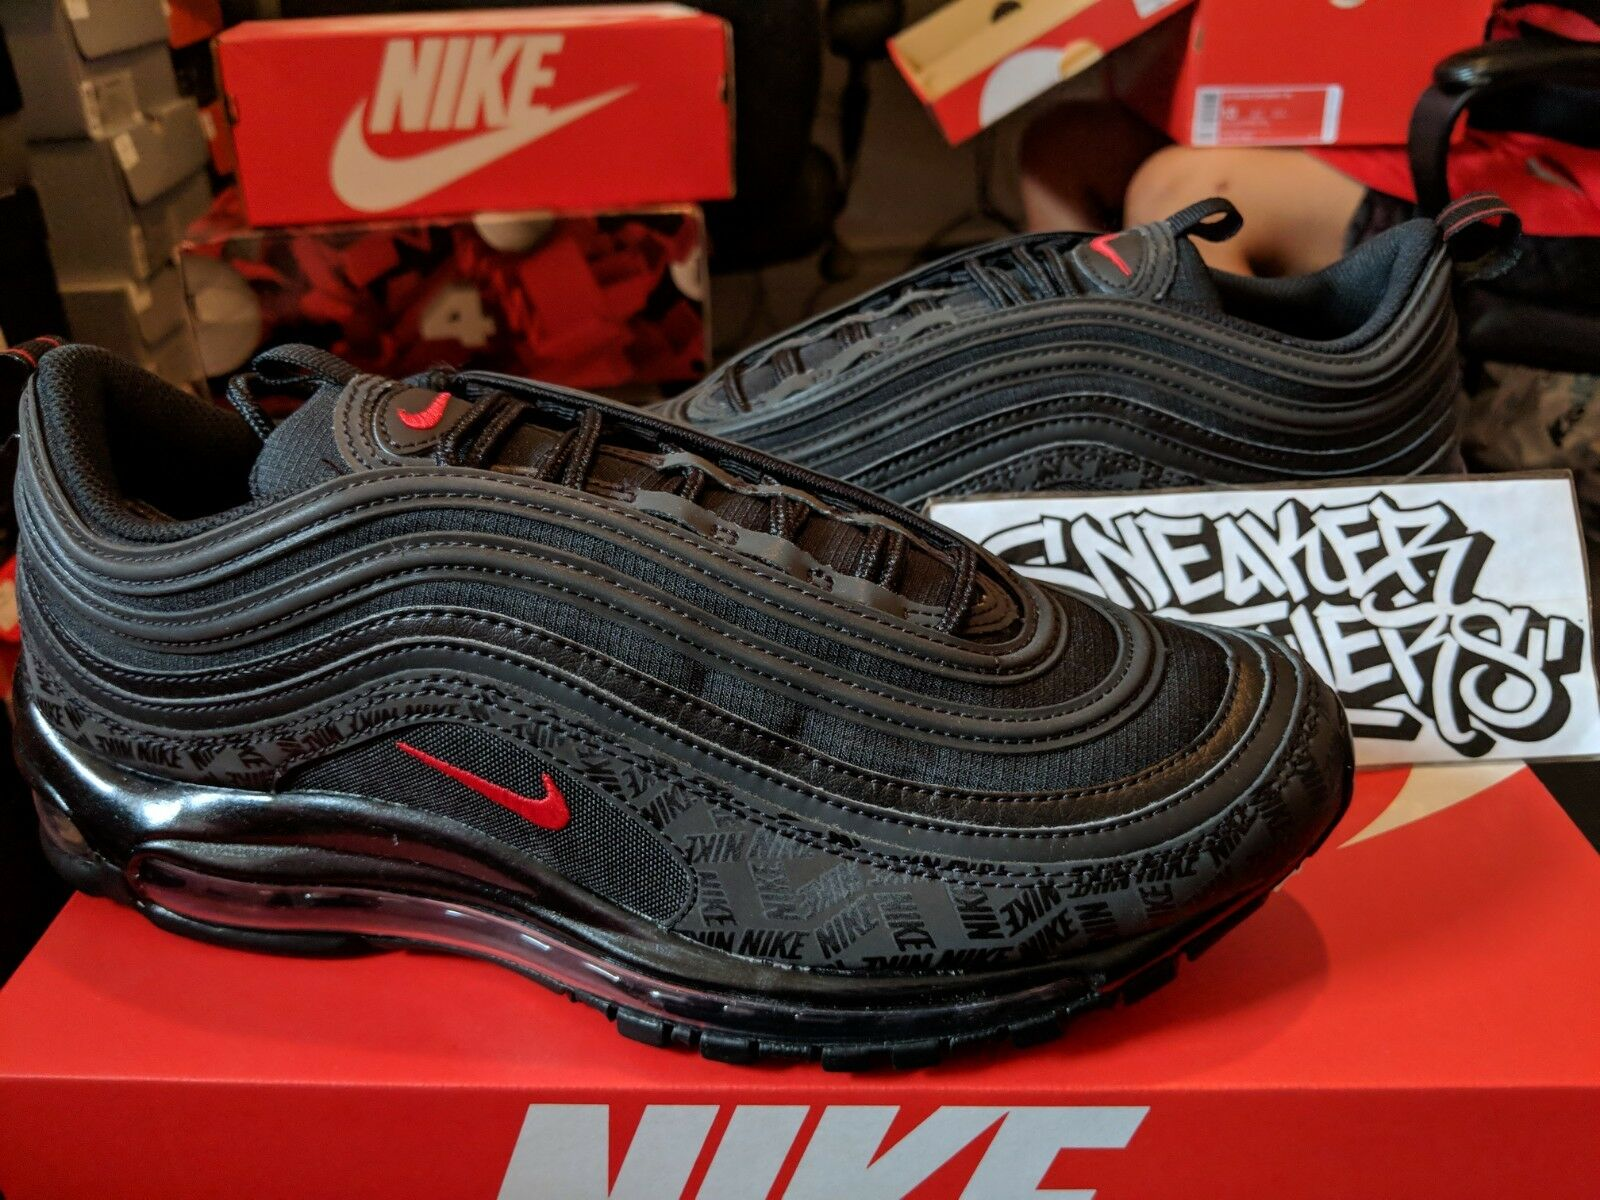 Nike Air Max 97 Black University Red Bred Reflective Logo Japan AR4259-001 Special limited time